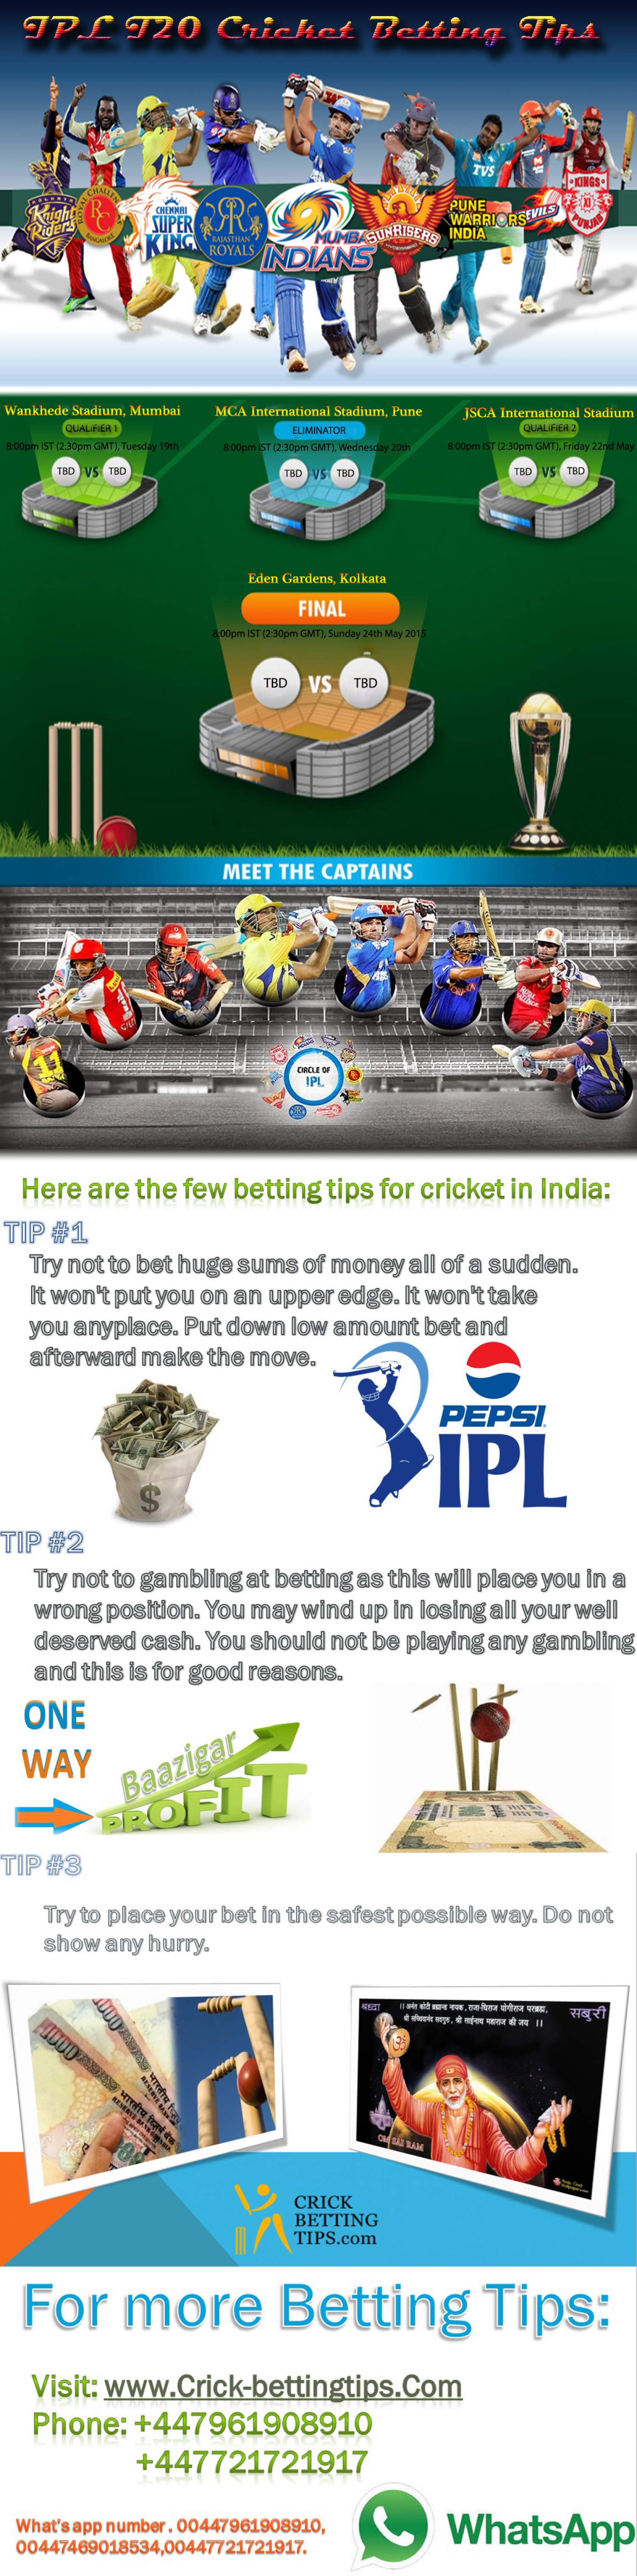 Ipl t20 betting betting trends nfl week 16 spreads